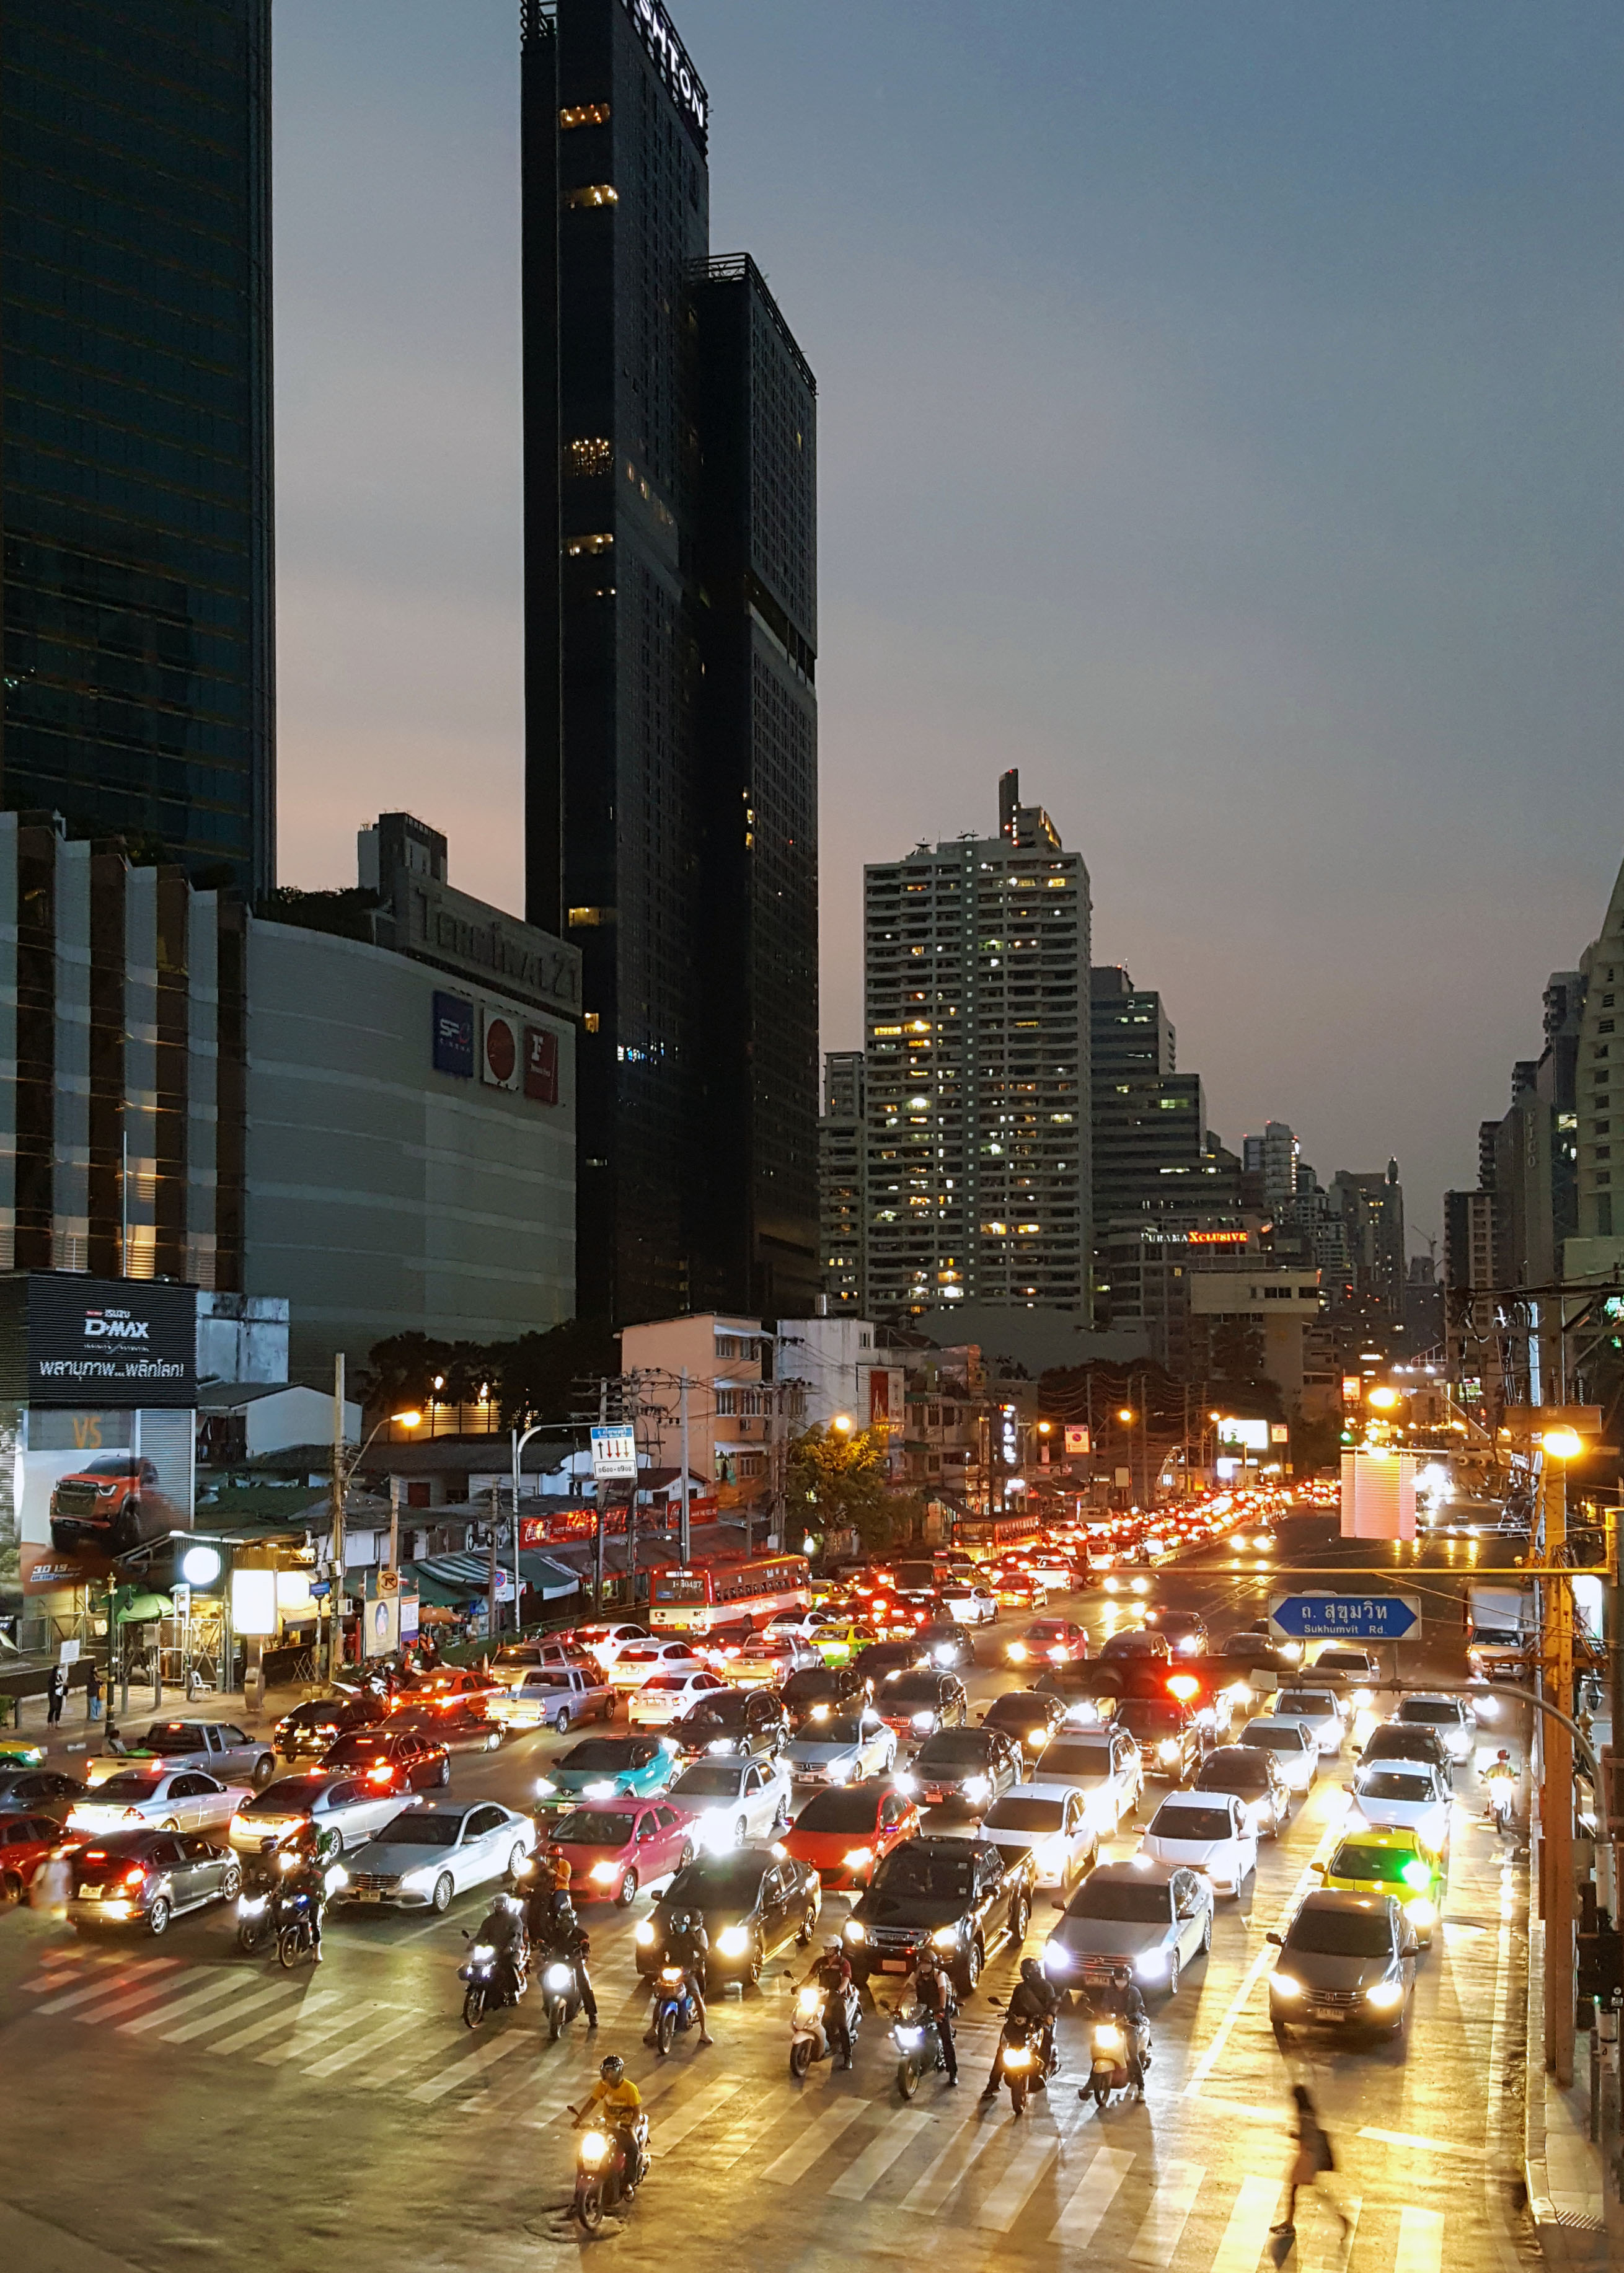 Rush hour at Asok street, Bangkok